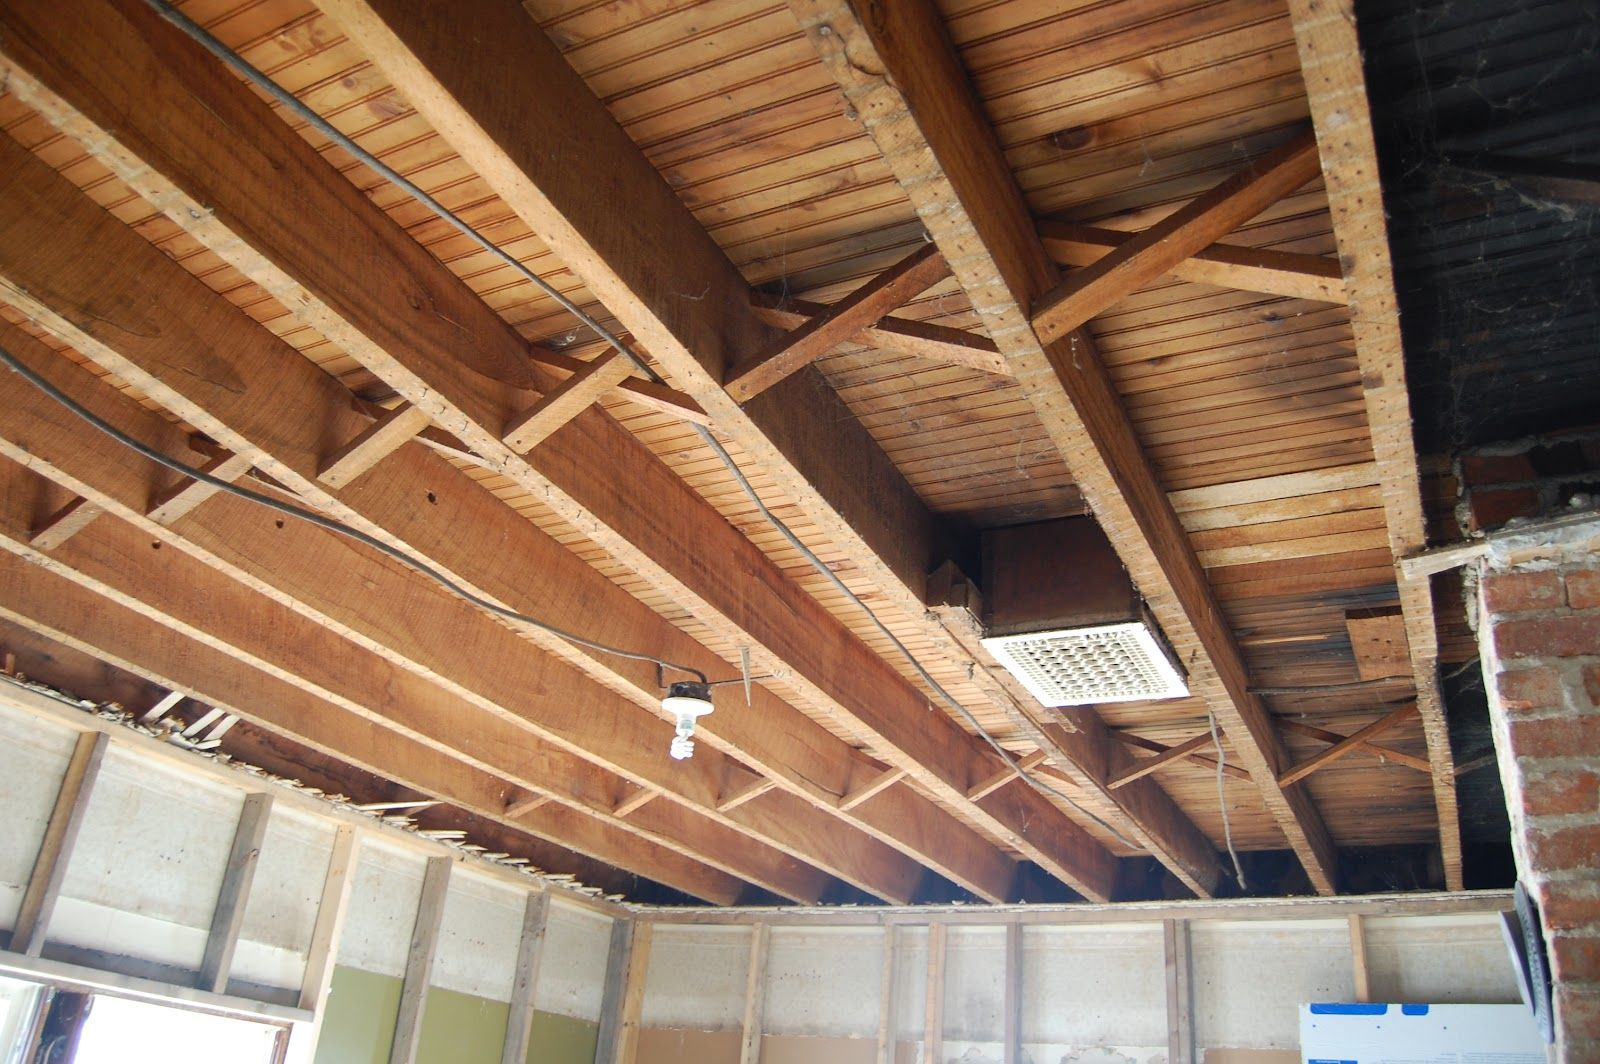 1st Floor Exposed Ceiling Joists Soundproofing An Exposed Joist Ceiling Exposed Basement Ceiling Exposed Ceilings Low Ceiling Basement